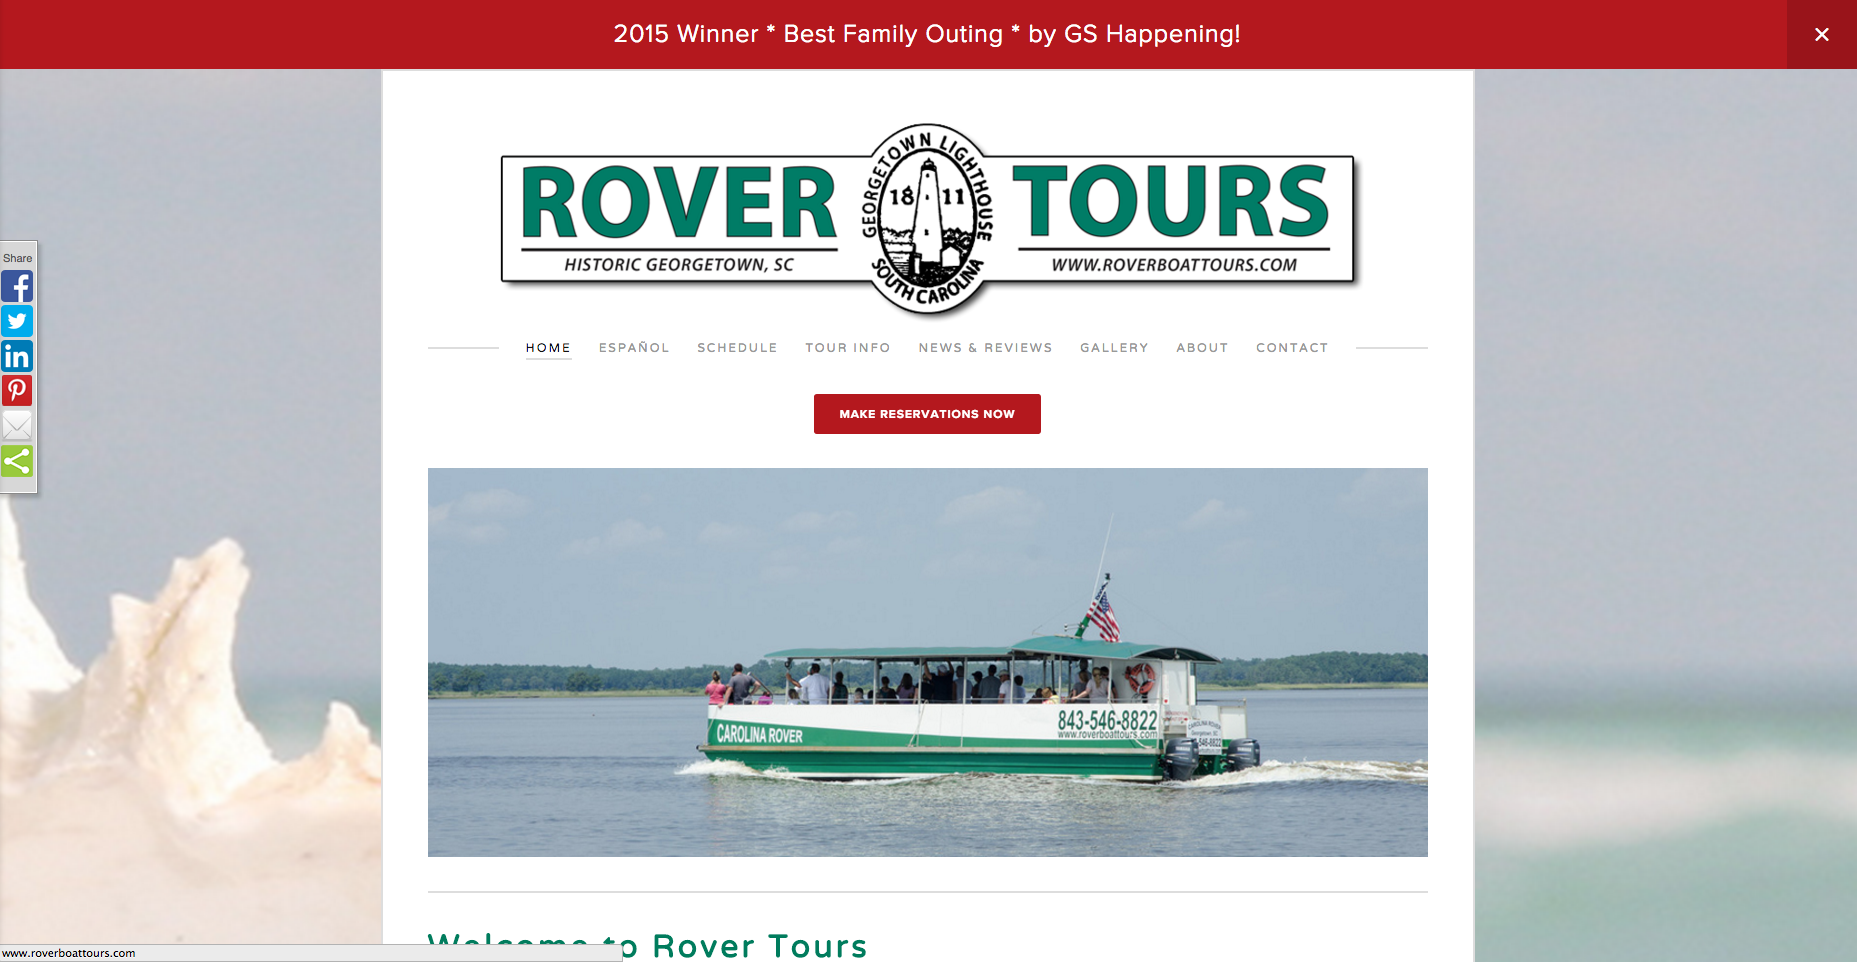 Rover Tours